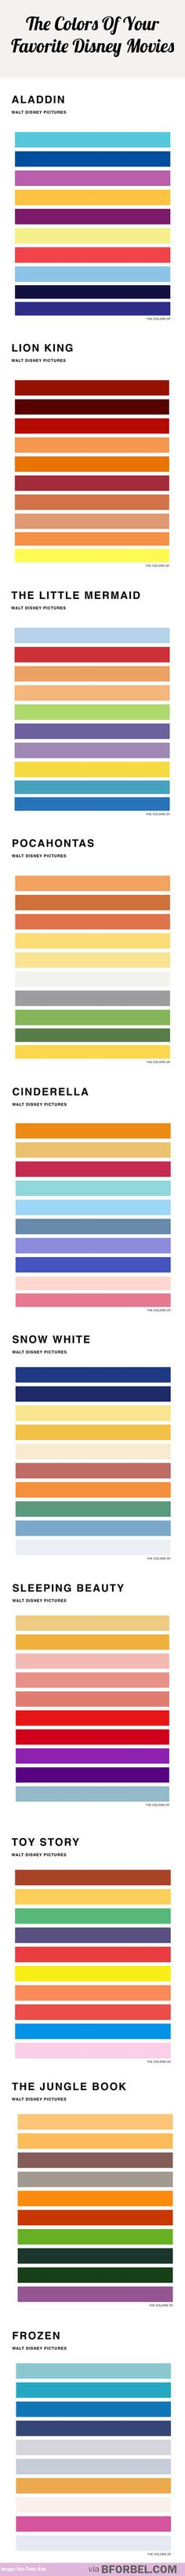 Color schemes of your favorite Disney movies